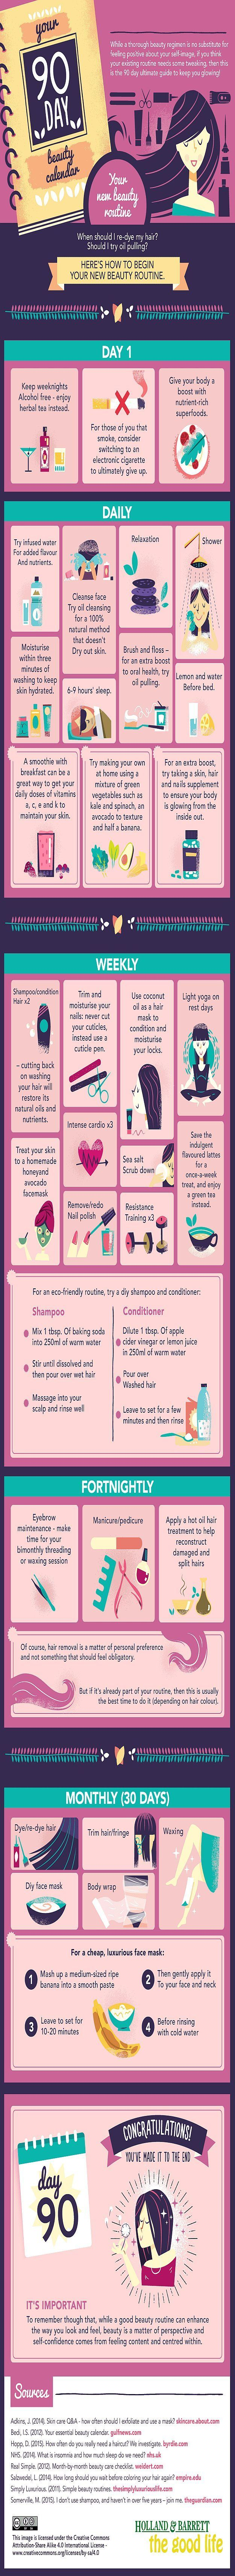 90-Day Guide to Looking Glam